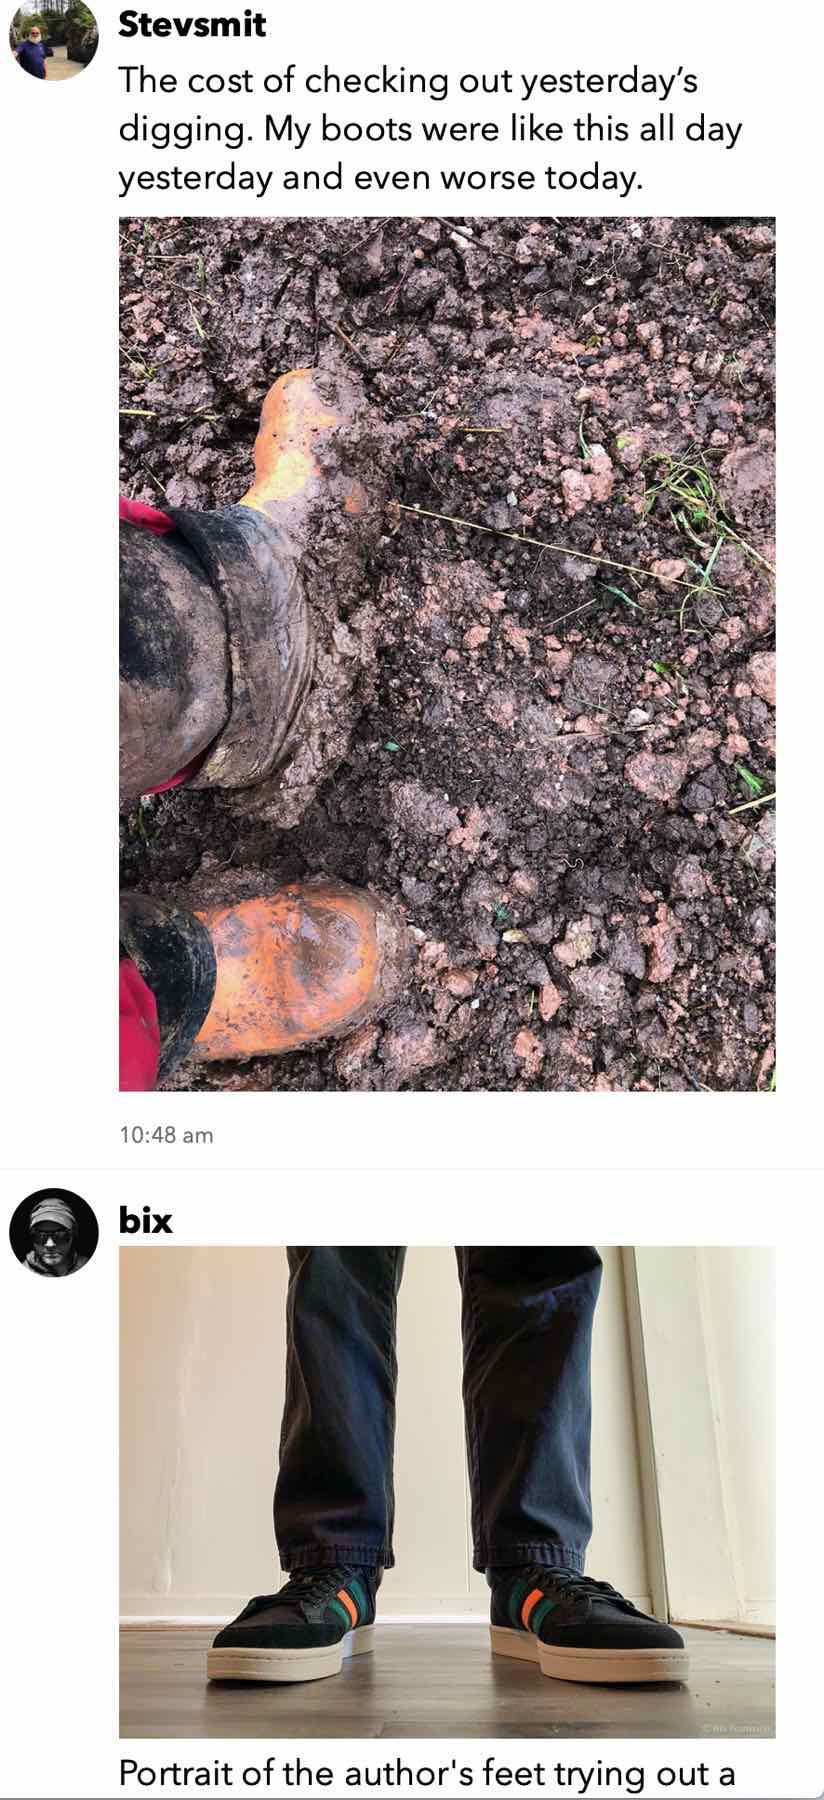 Micro.Blog timeline showing adjacent pictures of feet wearing gumboots or sneakers.